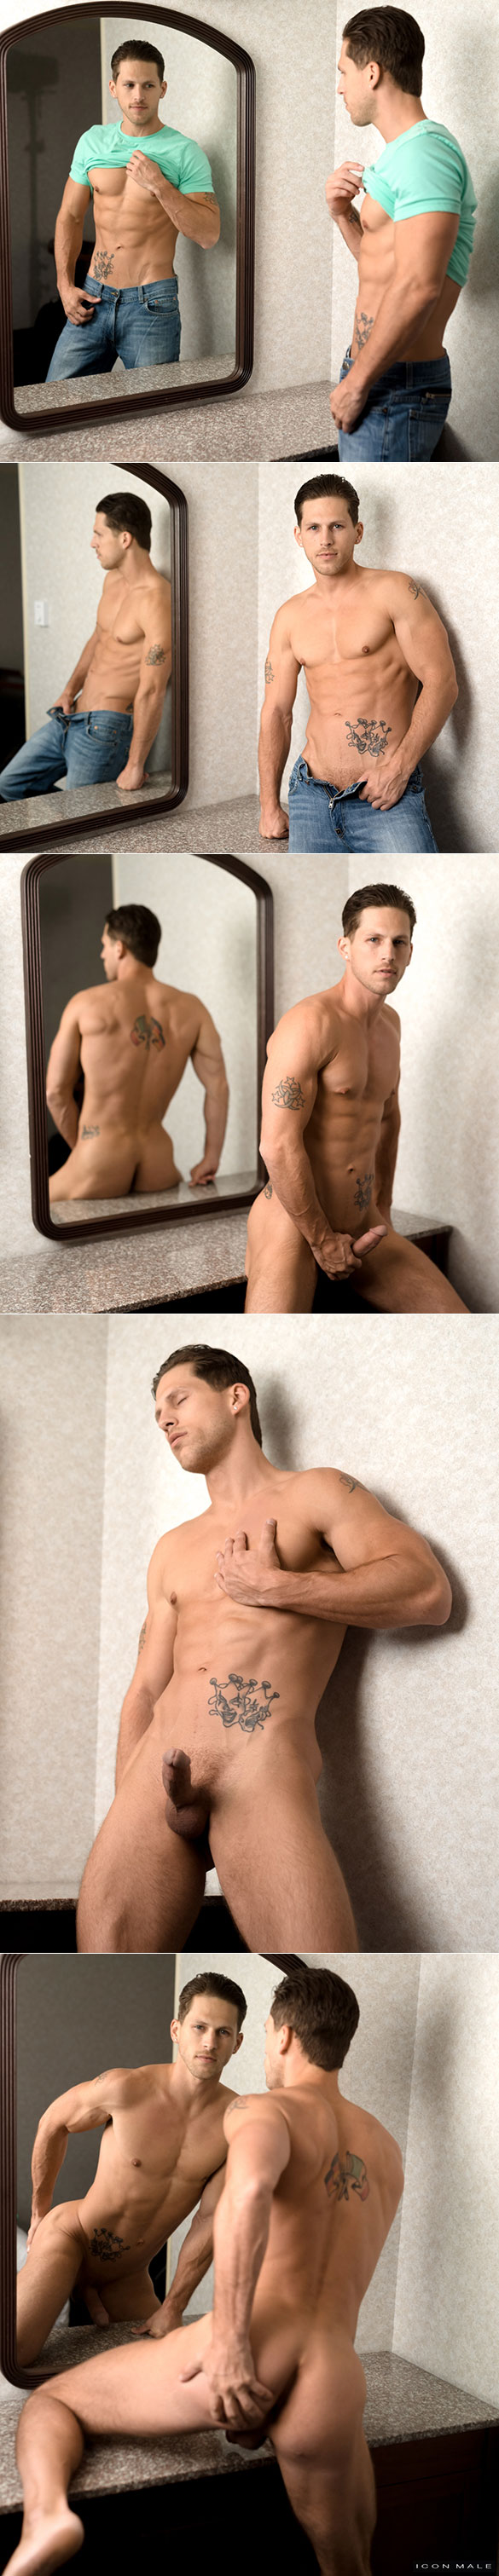 """IconMale: Roman Todd fucks Armond Rizzo in """"Brothers 3 - Blood Brothers"""""""